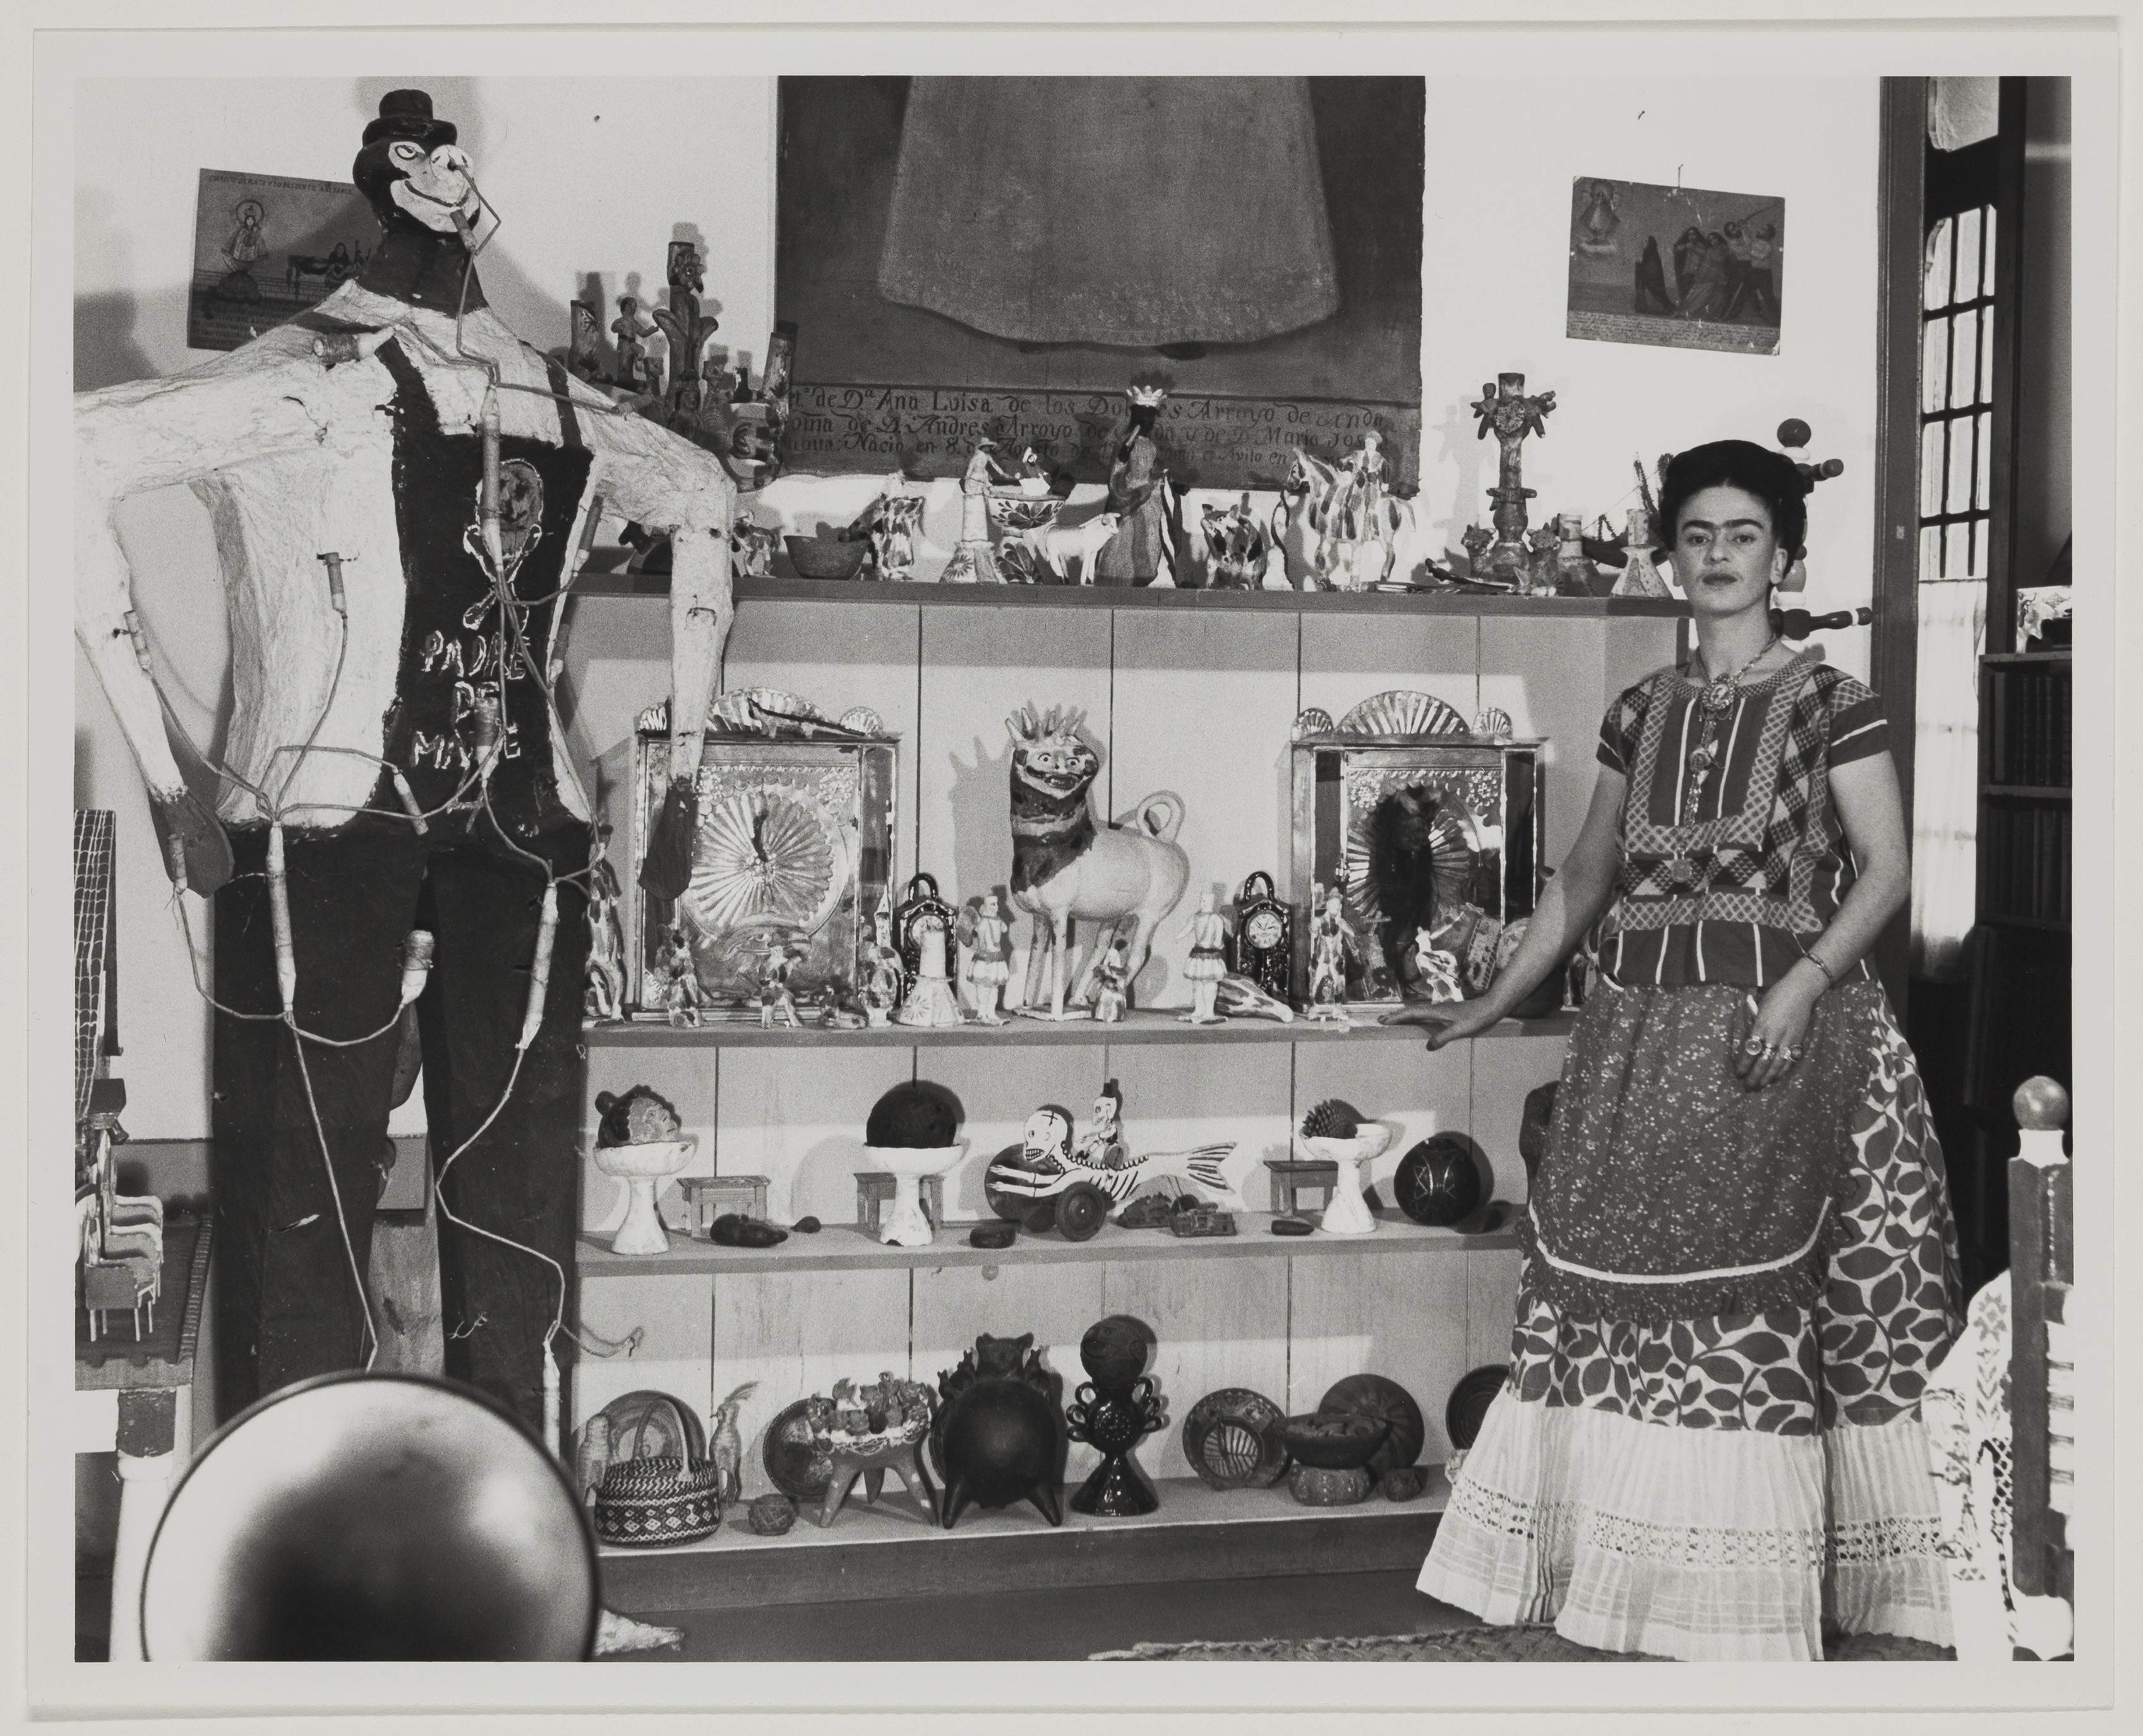 Frida Kahlo in Rivera Living Room with Figure of Judas Bernard Silberstein (American, 1905–1999)